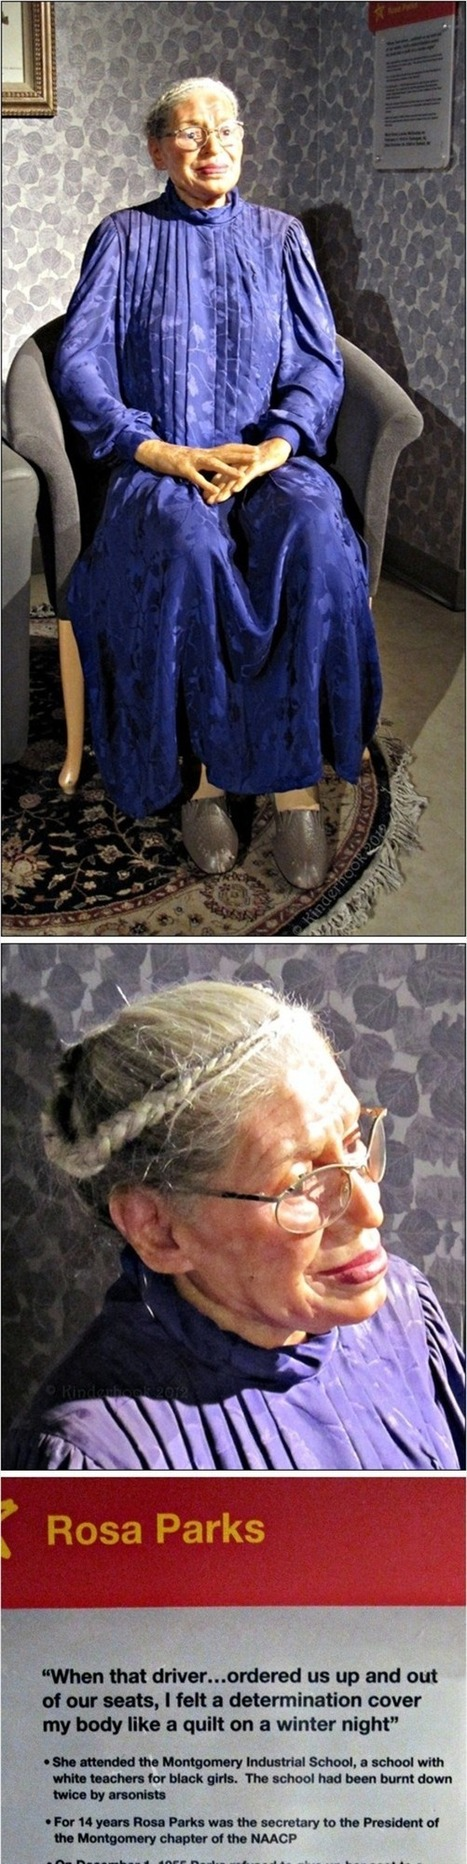 Rosa Parks at Mme. Tussauds | Project on Civil Right and Historical Land Marks | Scoop.it